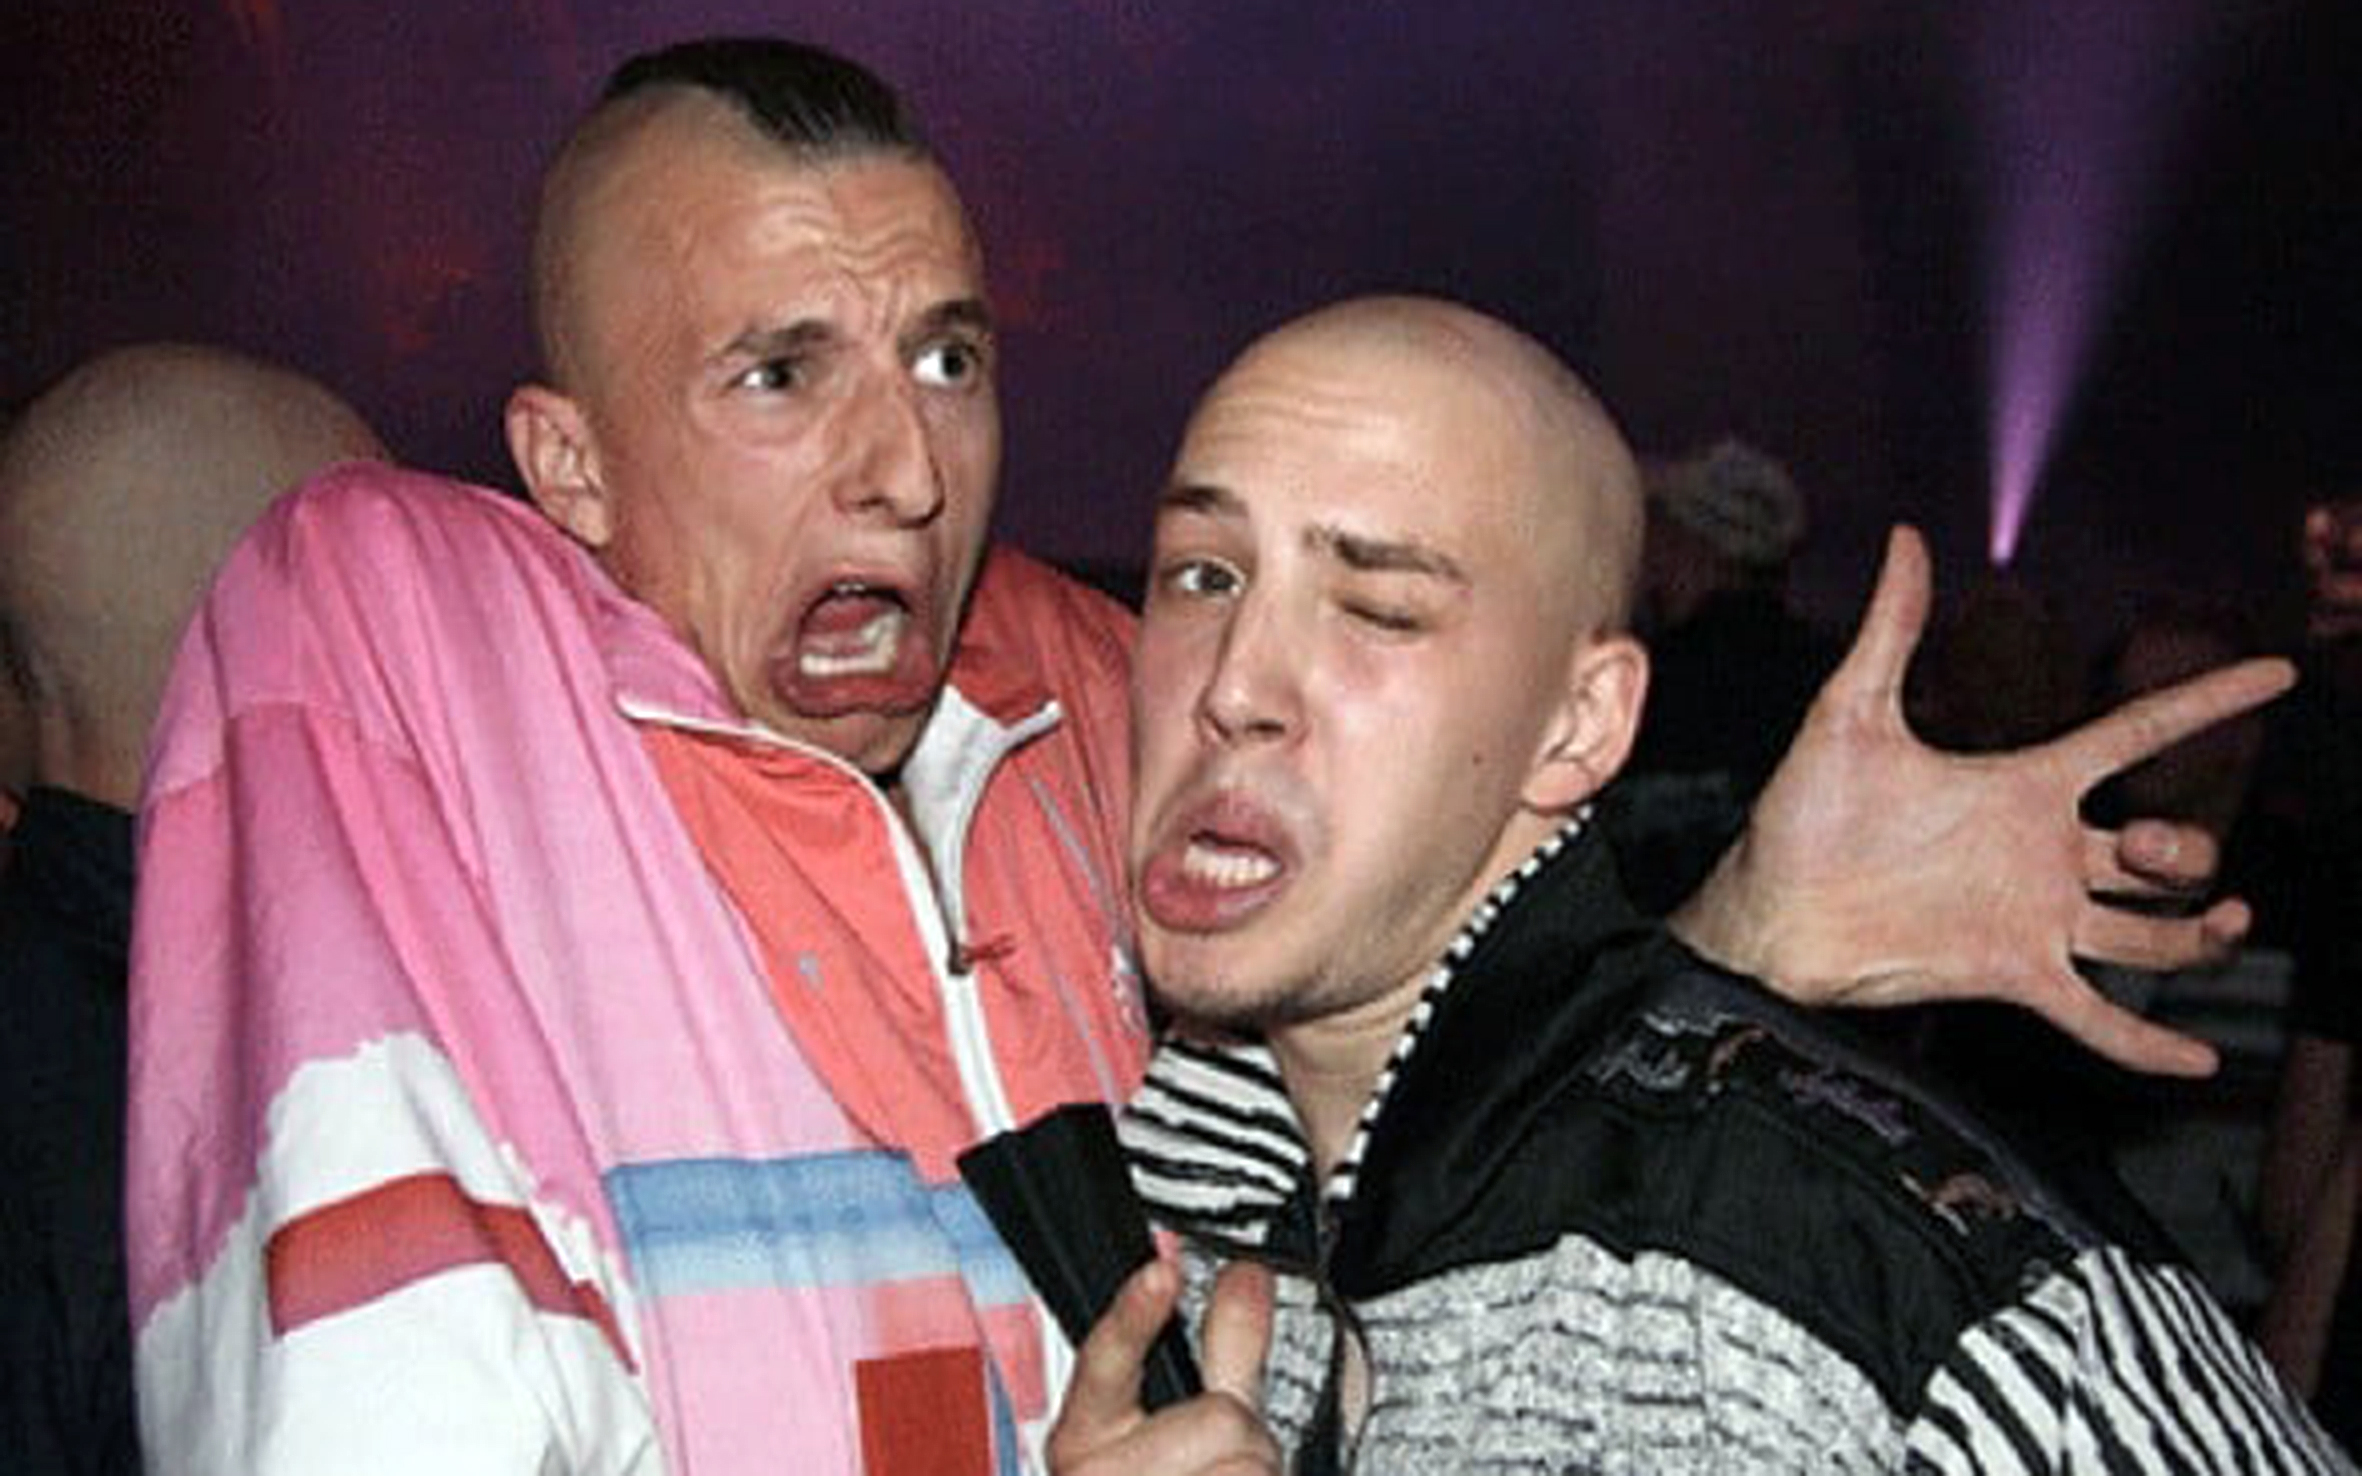 308.Gabber / The Netherlands - Gabber is the only Dutch subculture that got known globally and is now called hardcore after the music hard-style genre that it is performed to. Gabber dance consists of small steps that quickly follow each other to the rhythm of the bass drum. The lower body (down from the pelvis) is the most important part, though it is not unusual to move the arms and torso too. Because one is supposed to keep up to the beat of the song, the dance is usually done fairly quickly, since the BPM of this music style can easily reach 190 BPM.